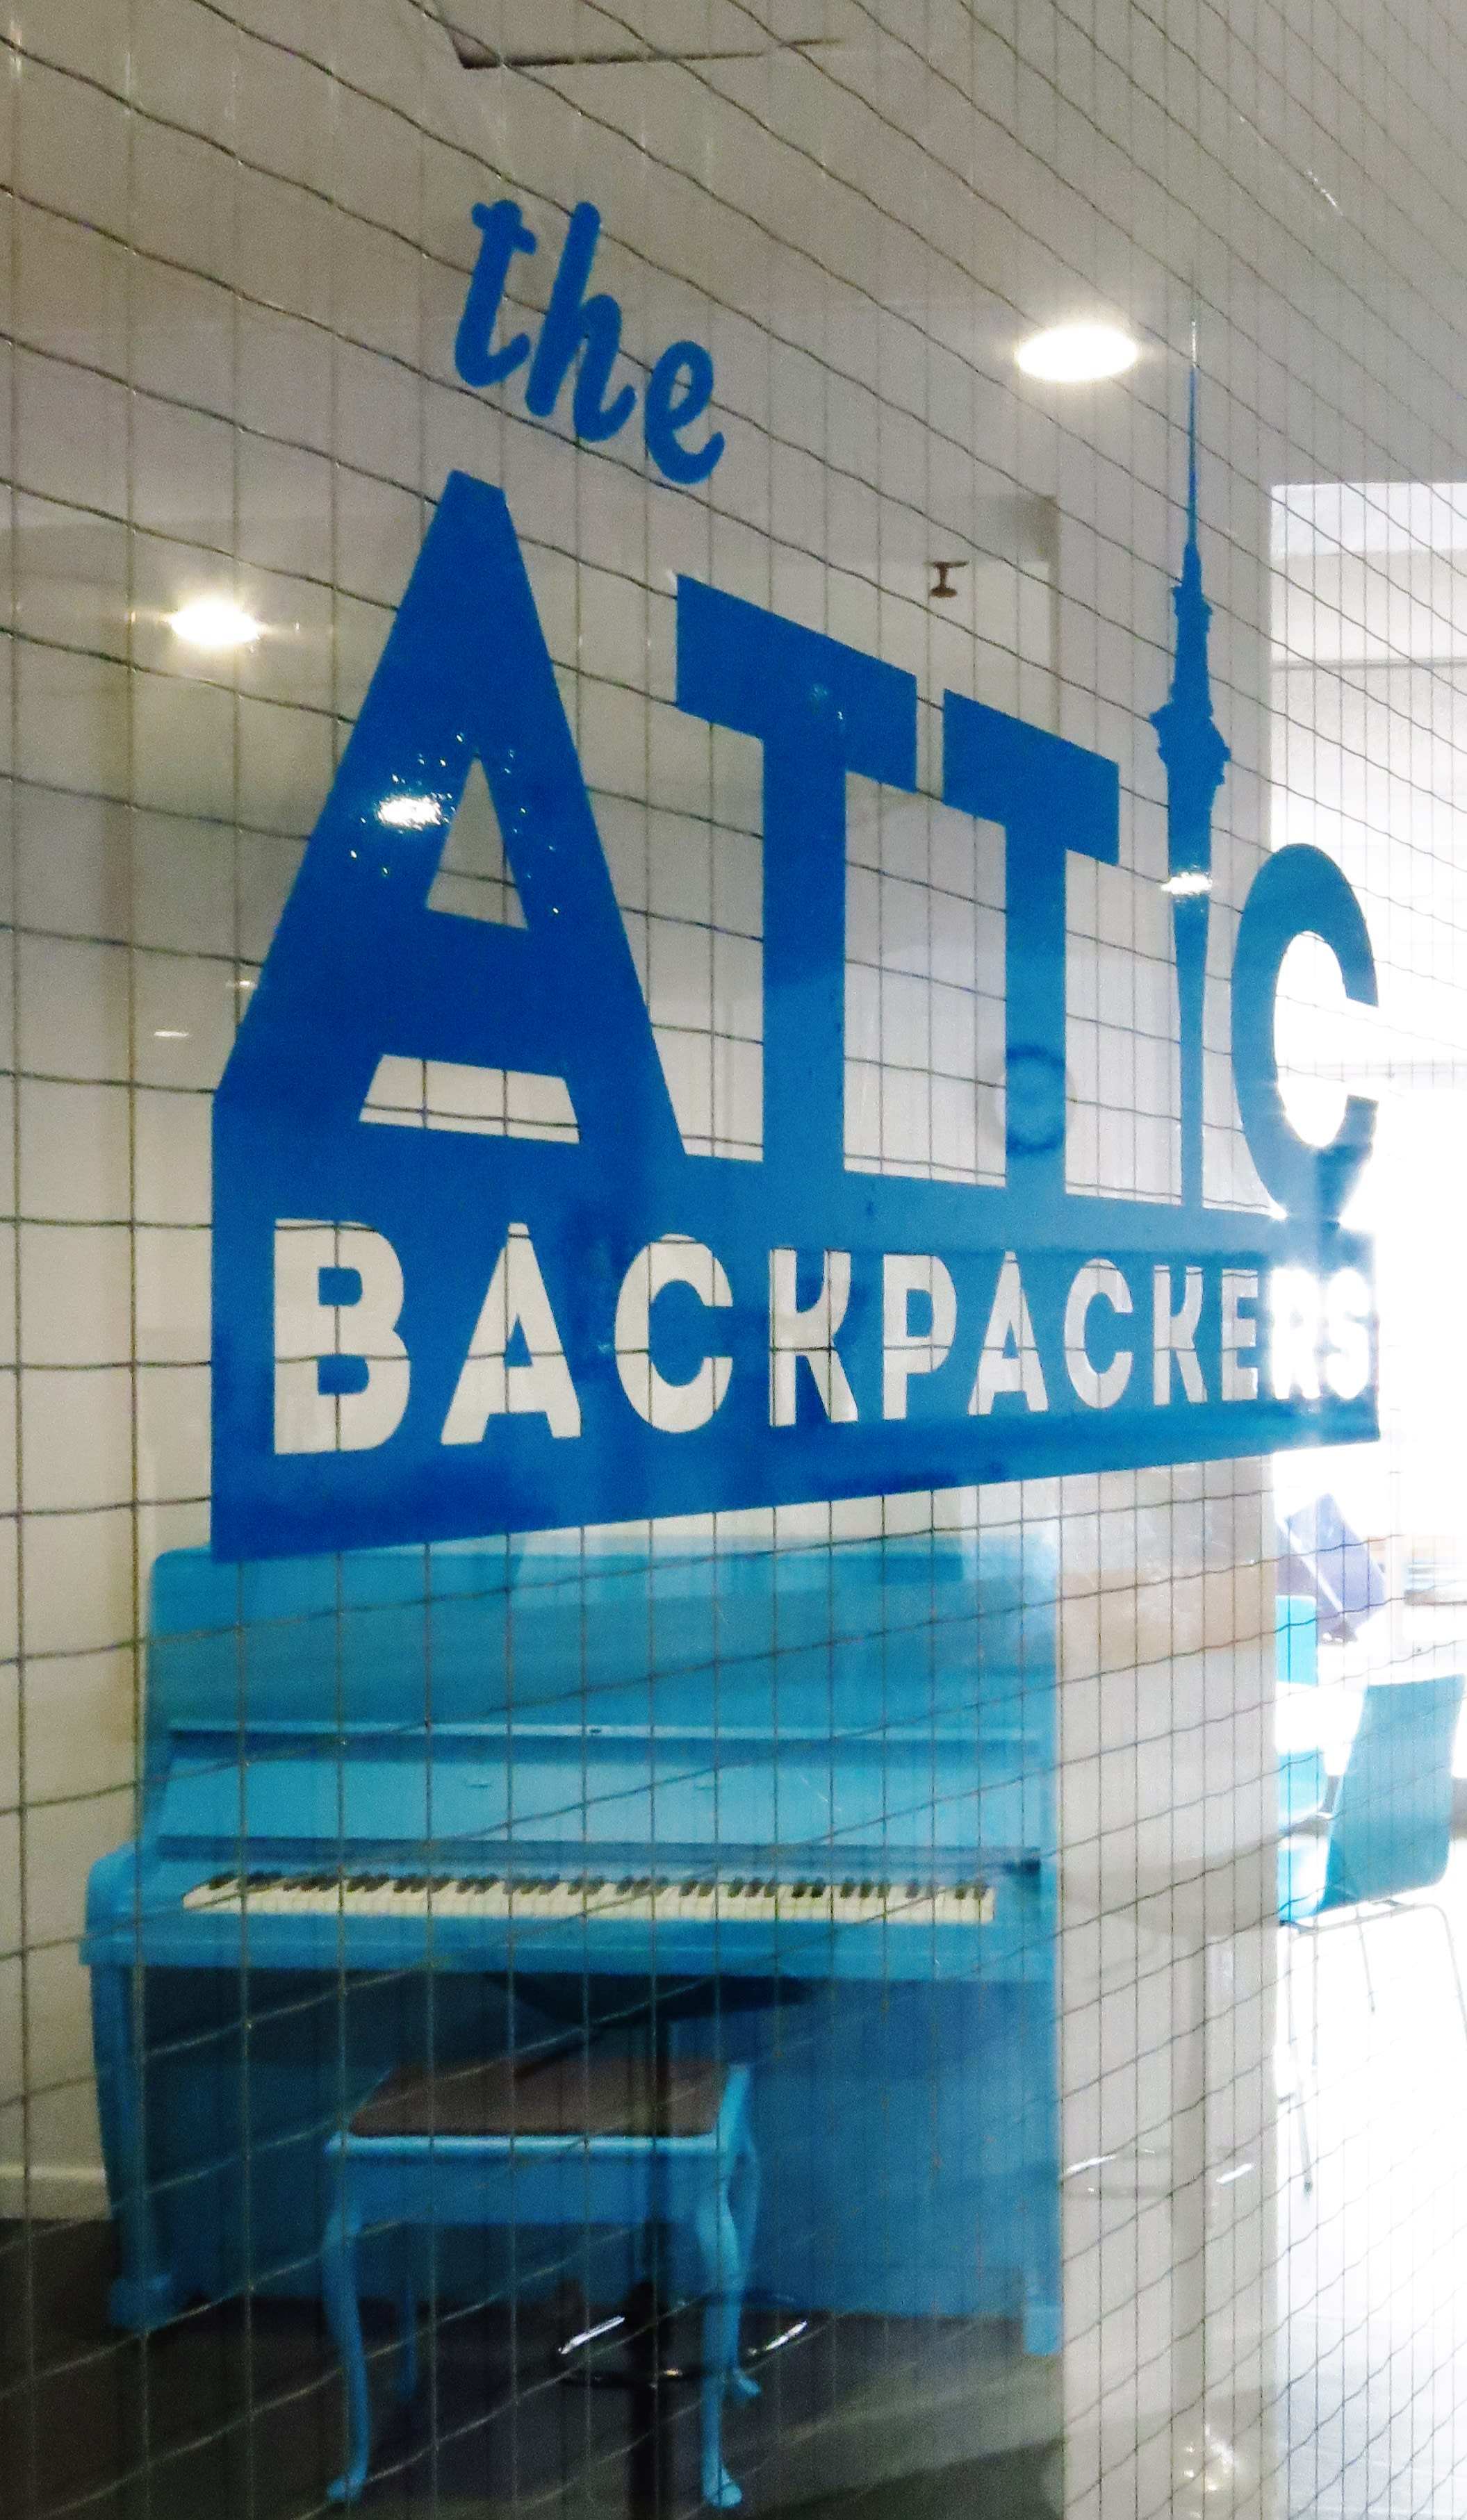 The Attic Backpackers